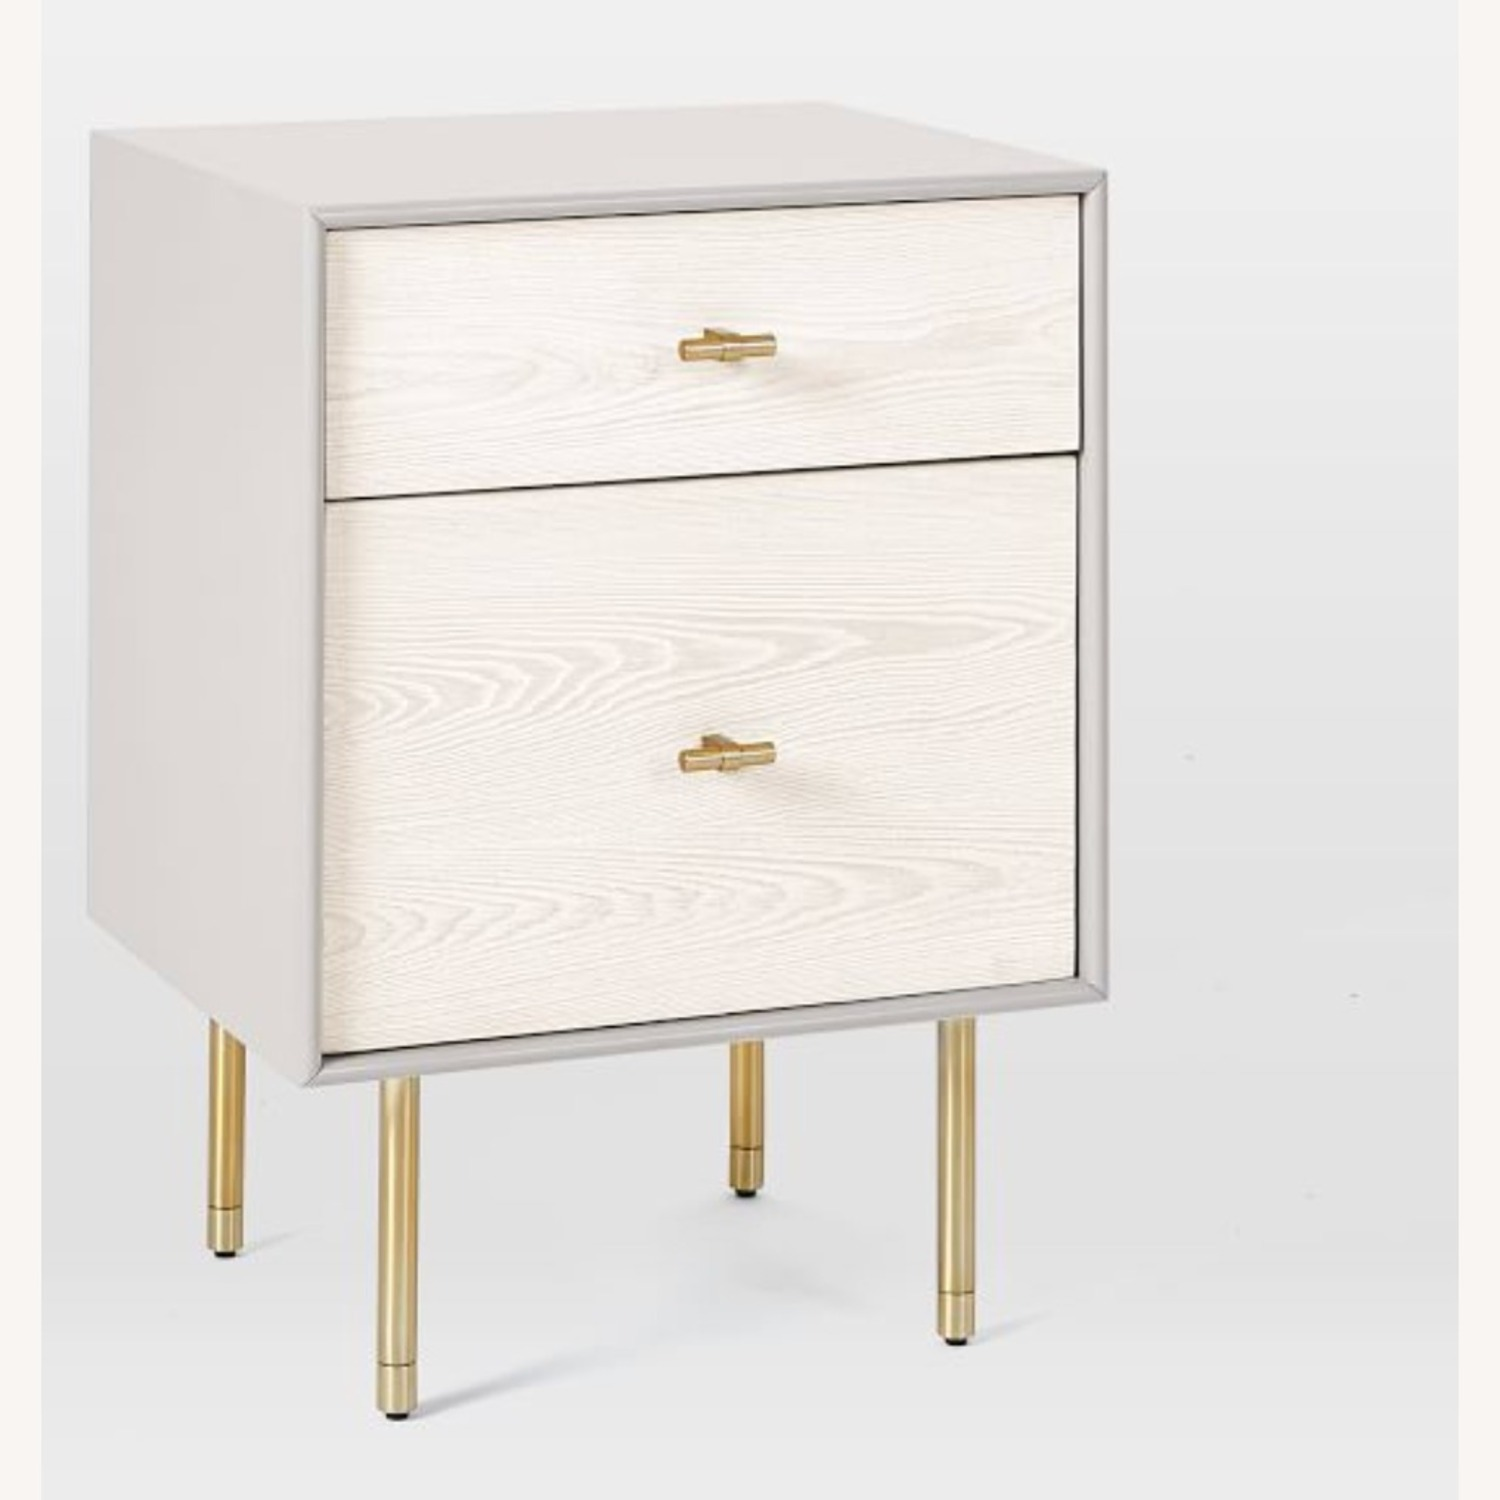 West Elm Modernist Wood & Lacquer Nightstand - image-2